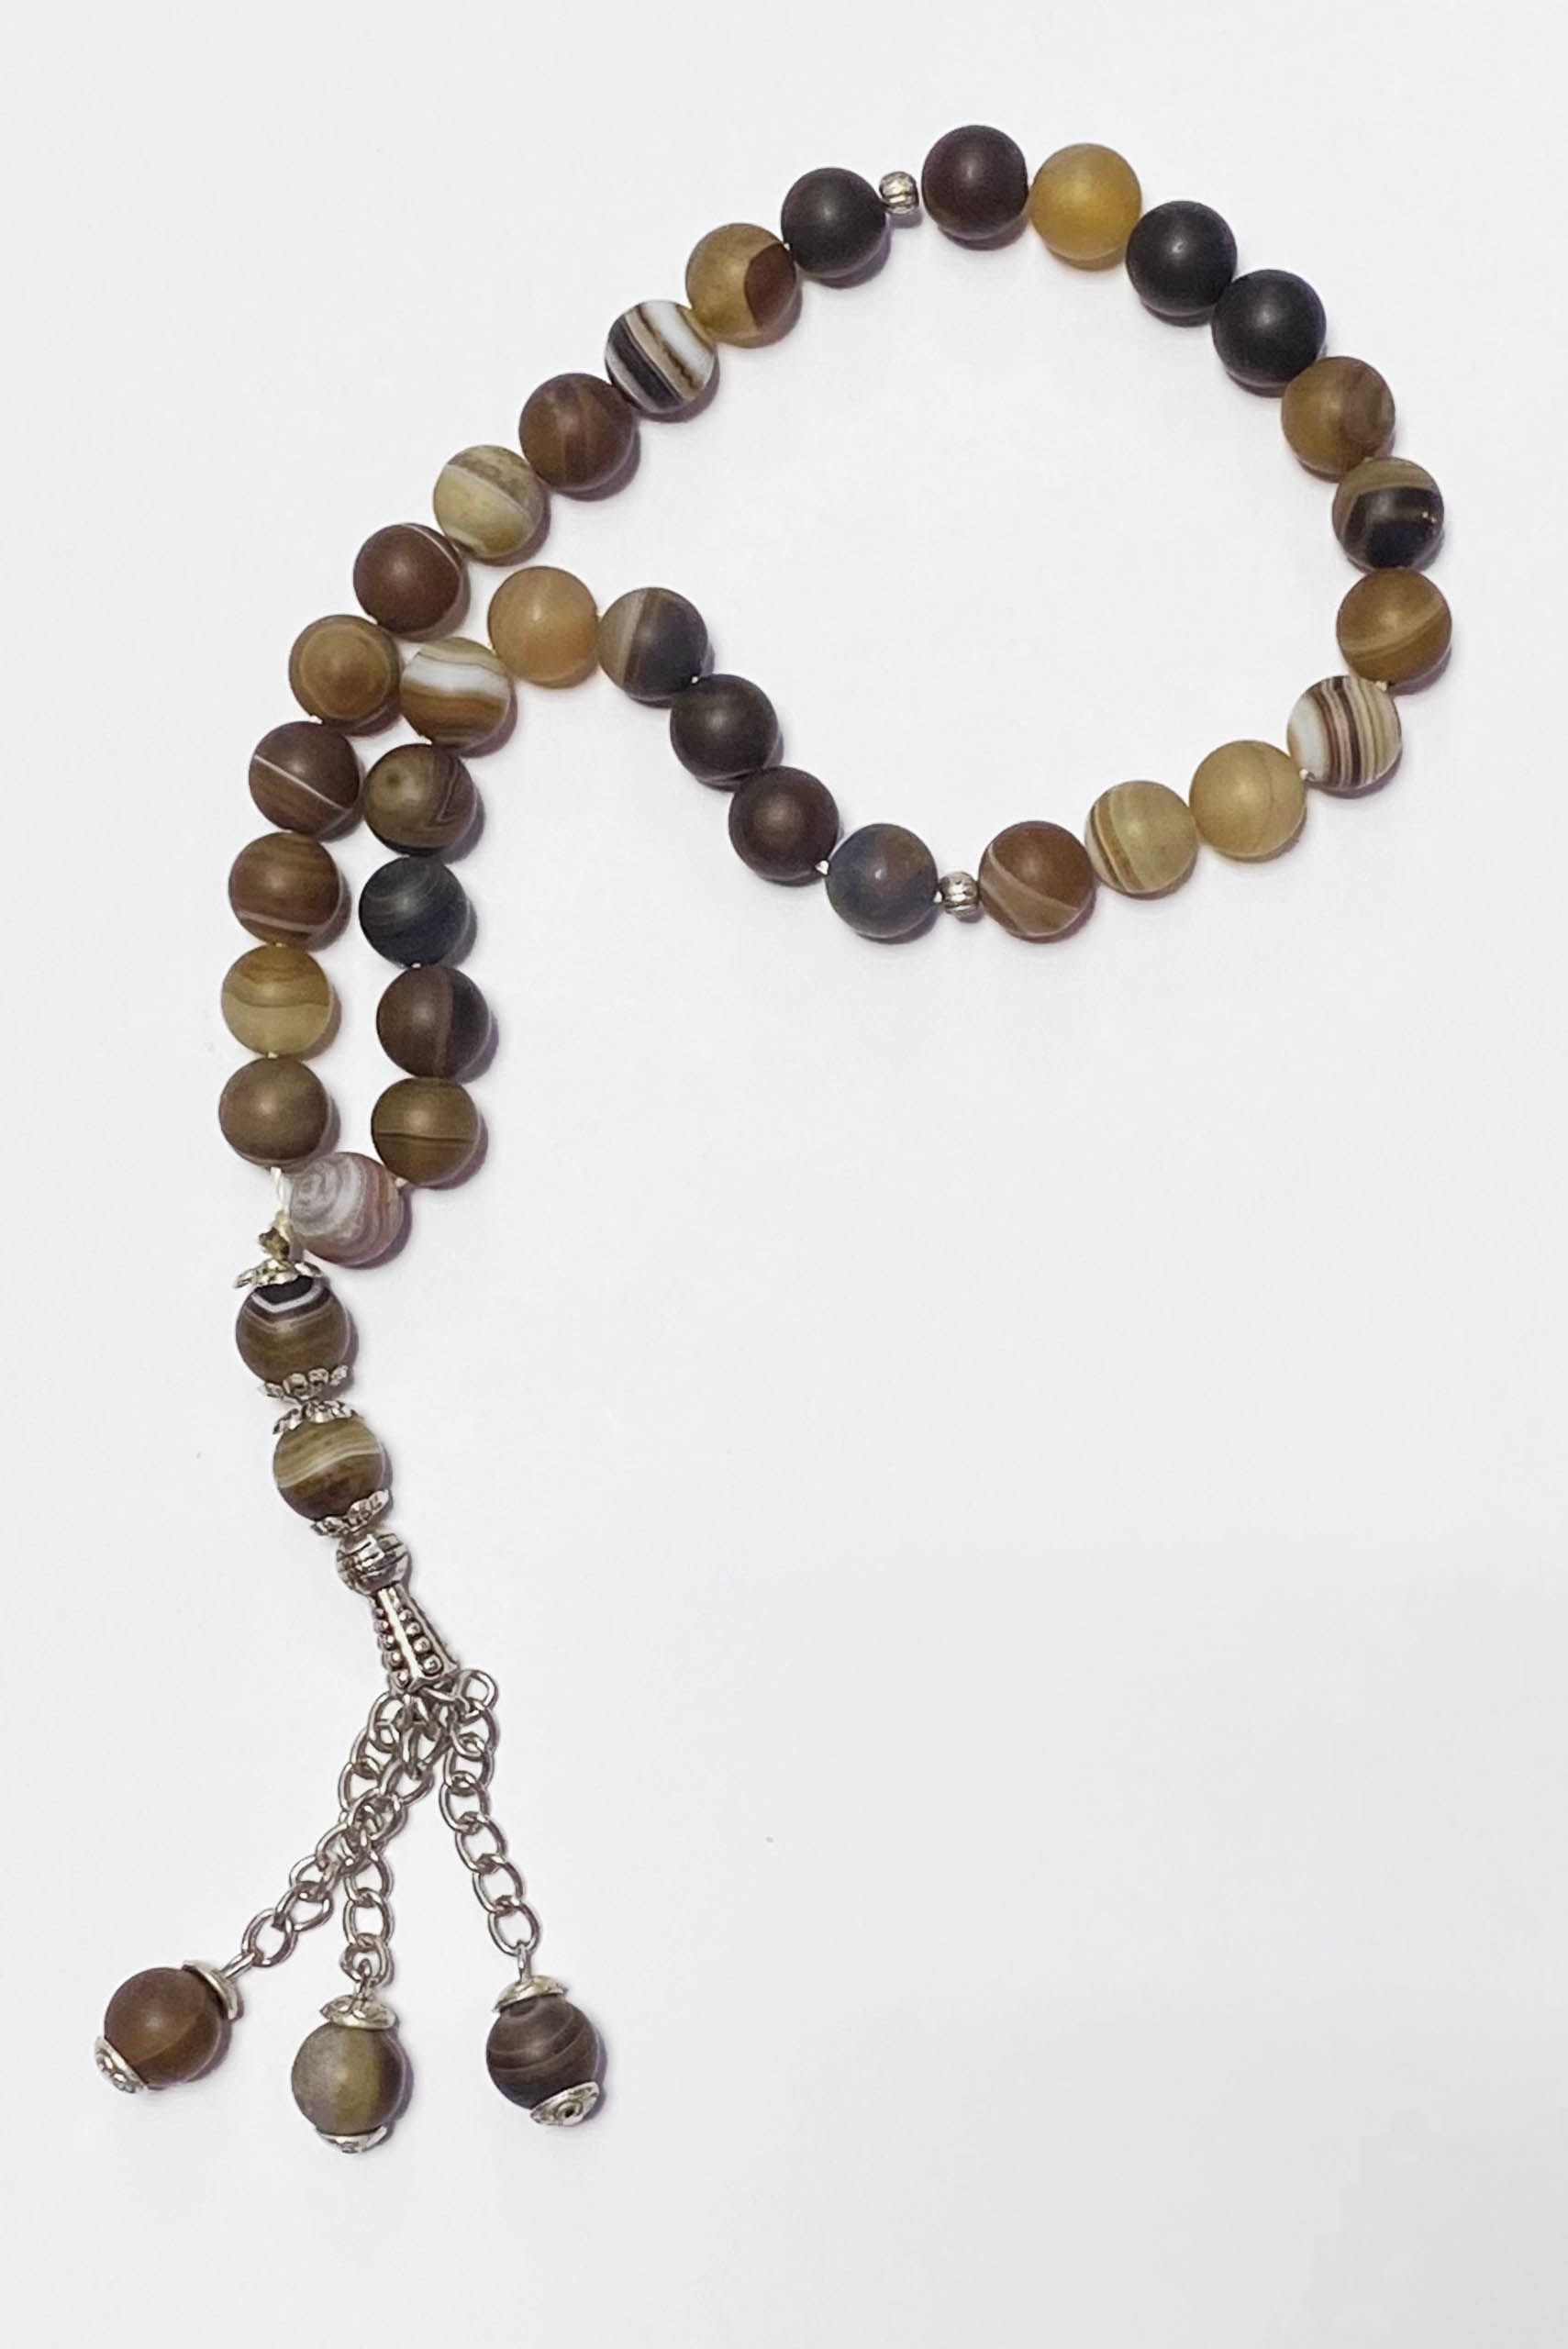 alqamees tasbih prayer beads